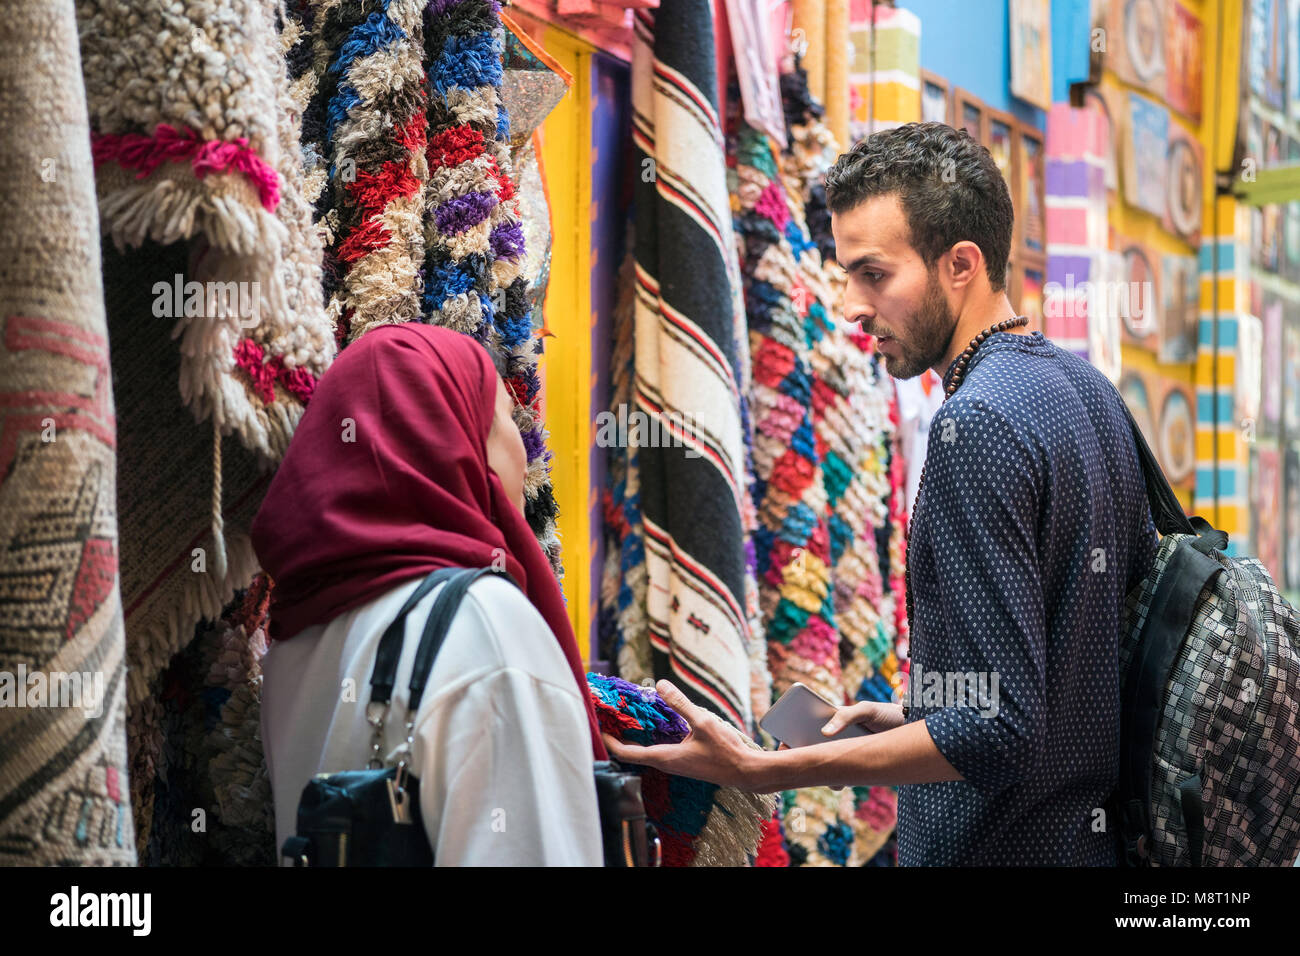 Smiling young couple shopping musulmane et à la recherche à tapis dans un magasin de textile Photo Stock